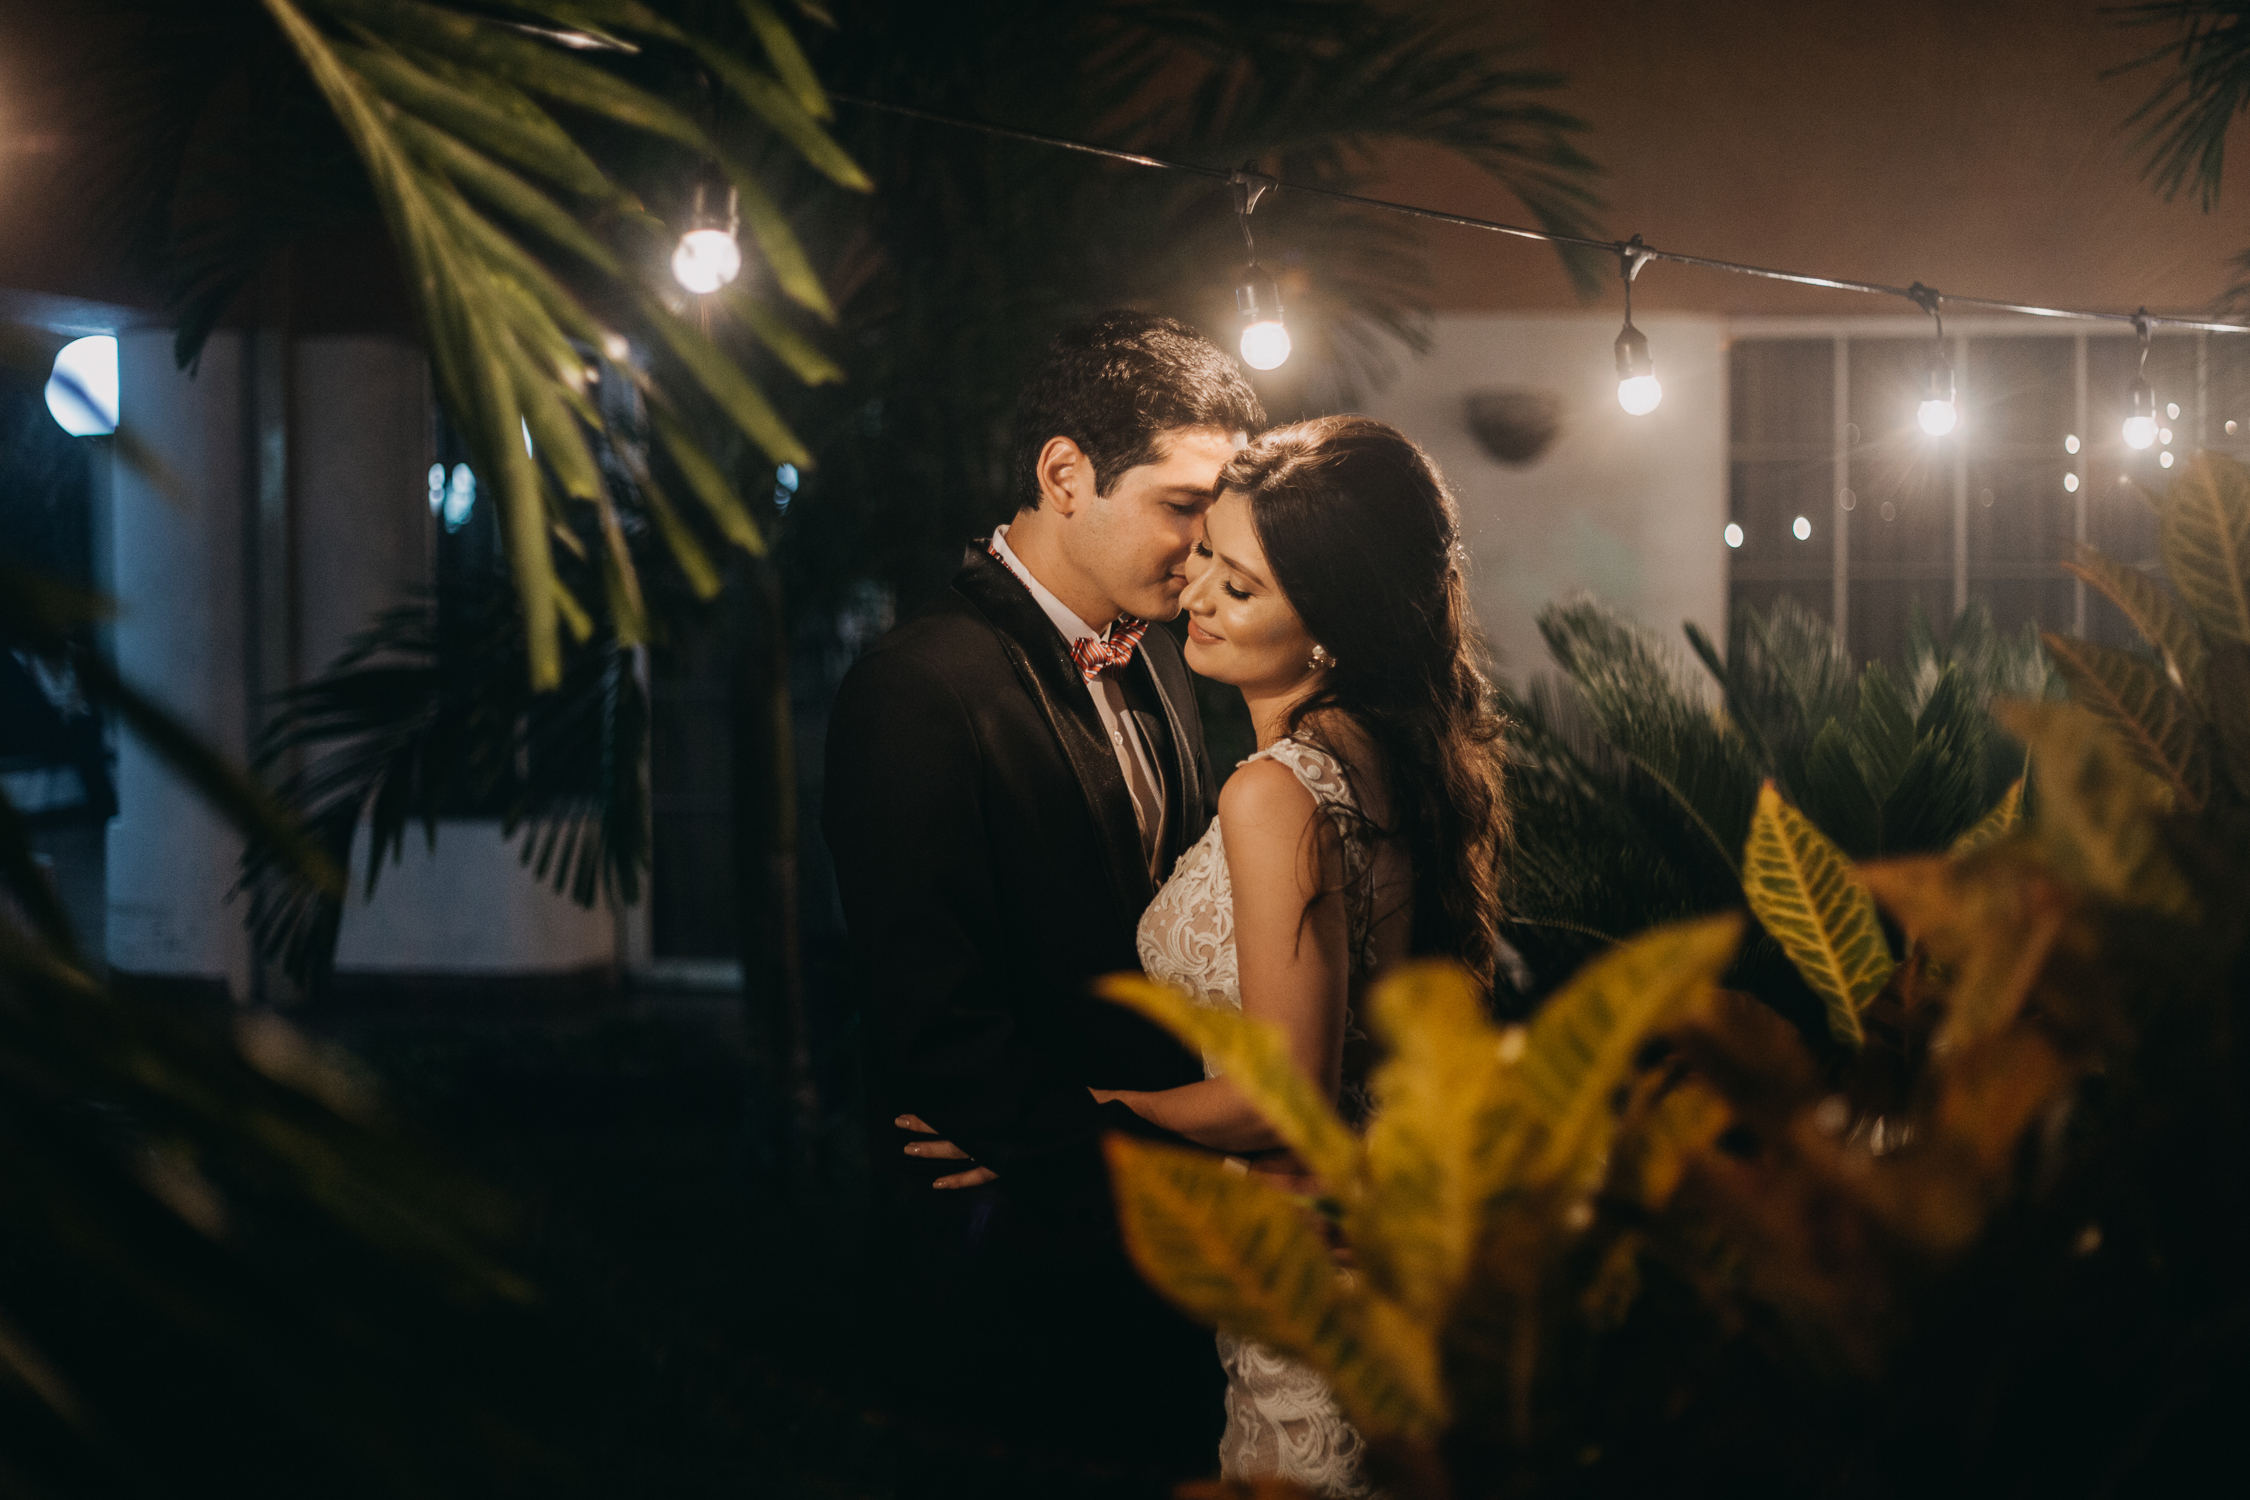 Michelle-Agurto-Fotografia-Bodas-Ecuador-Destination-Wedding-Photographer-Alysson-Tito-143.JPG